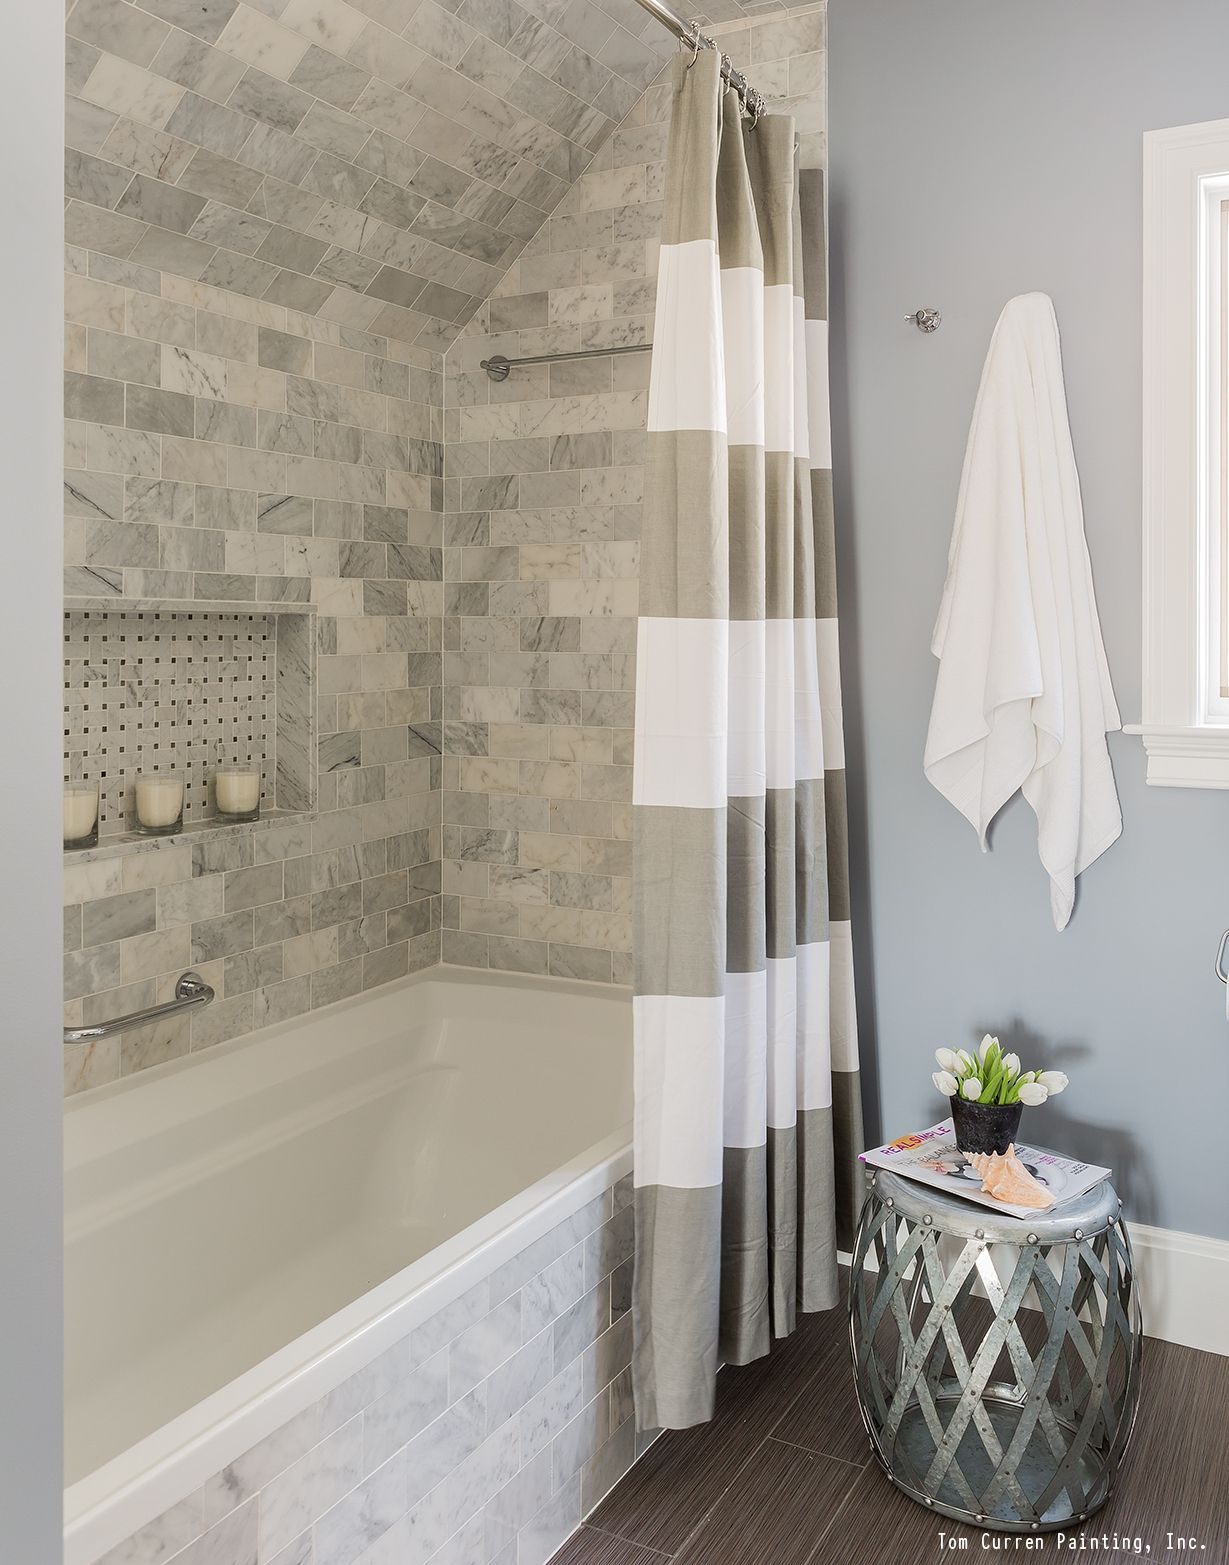 Bathroom Renovation Ideas Images a gorgeous bathroom remodel with a tile shower, white trim and a